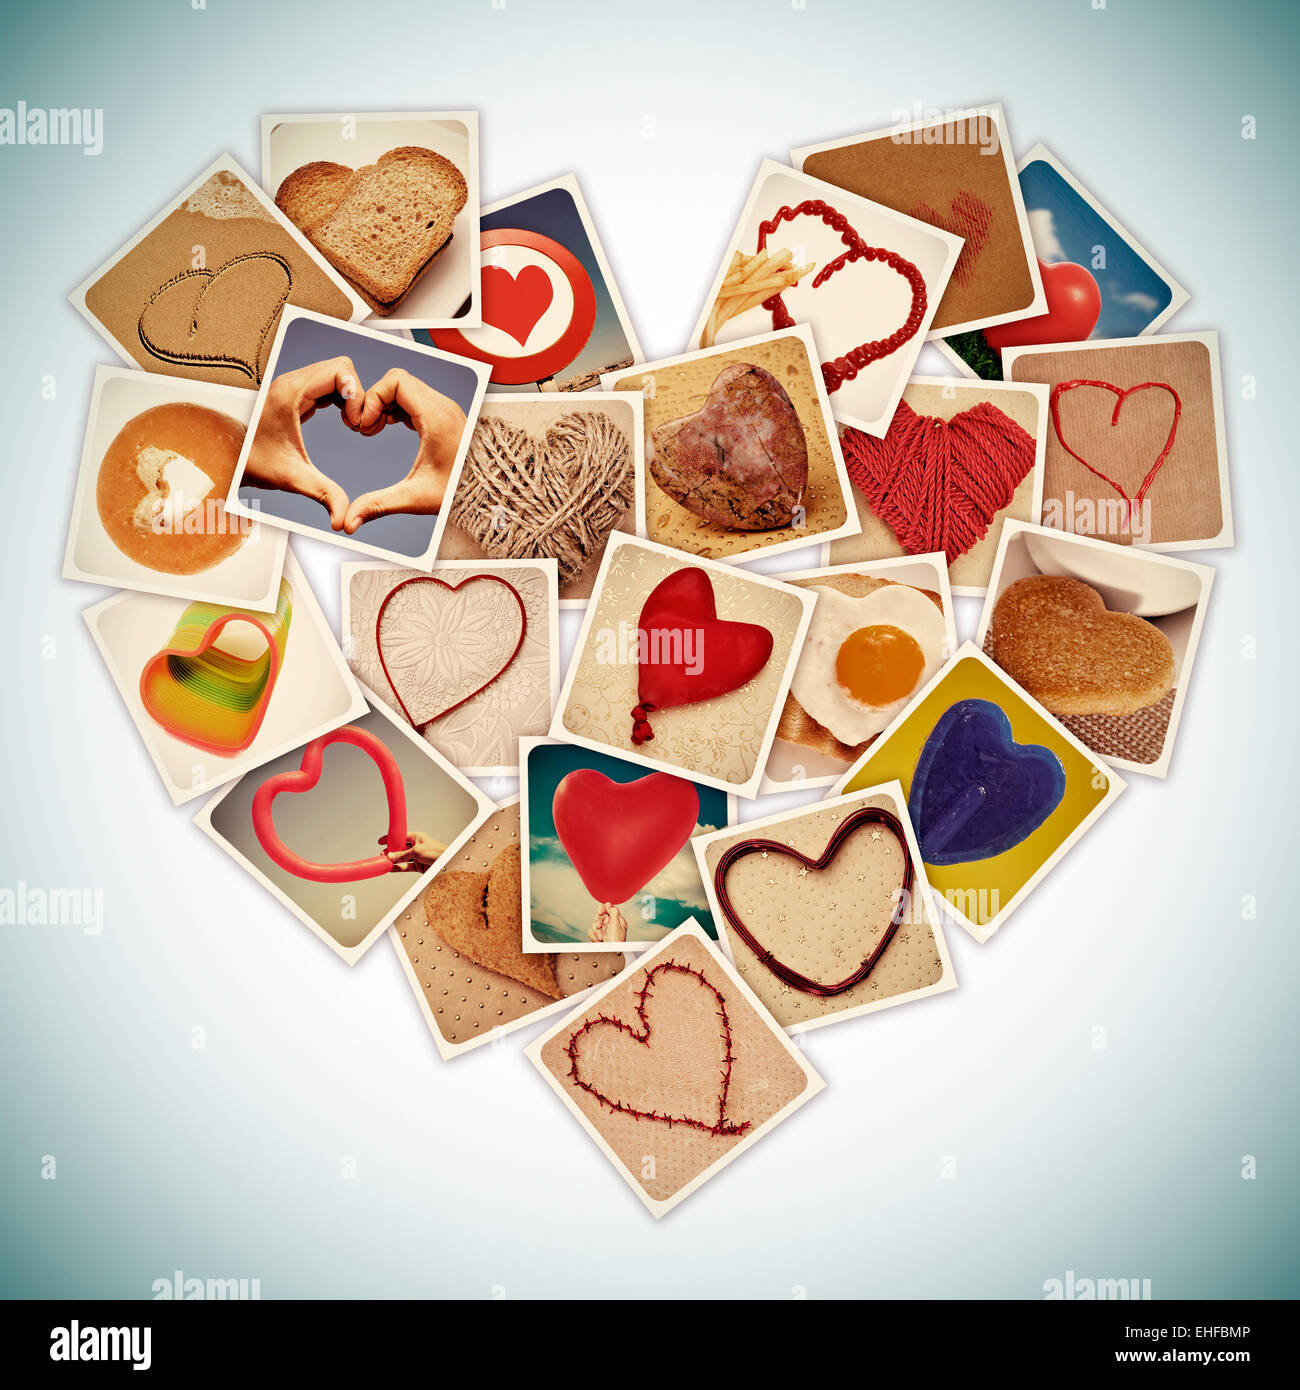 a collage of different snapshots of hearts and heart-shaped things, forming a heart, with a retro effect - Stock Image